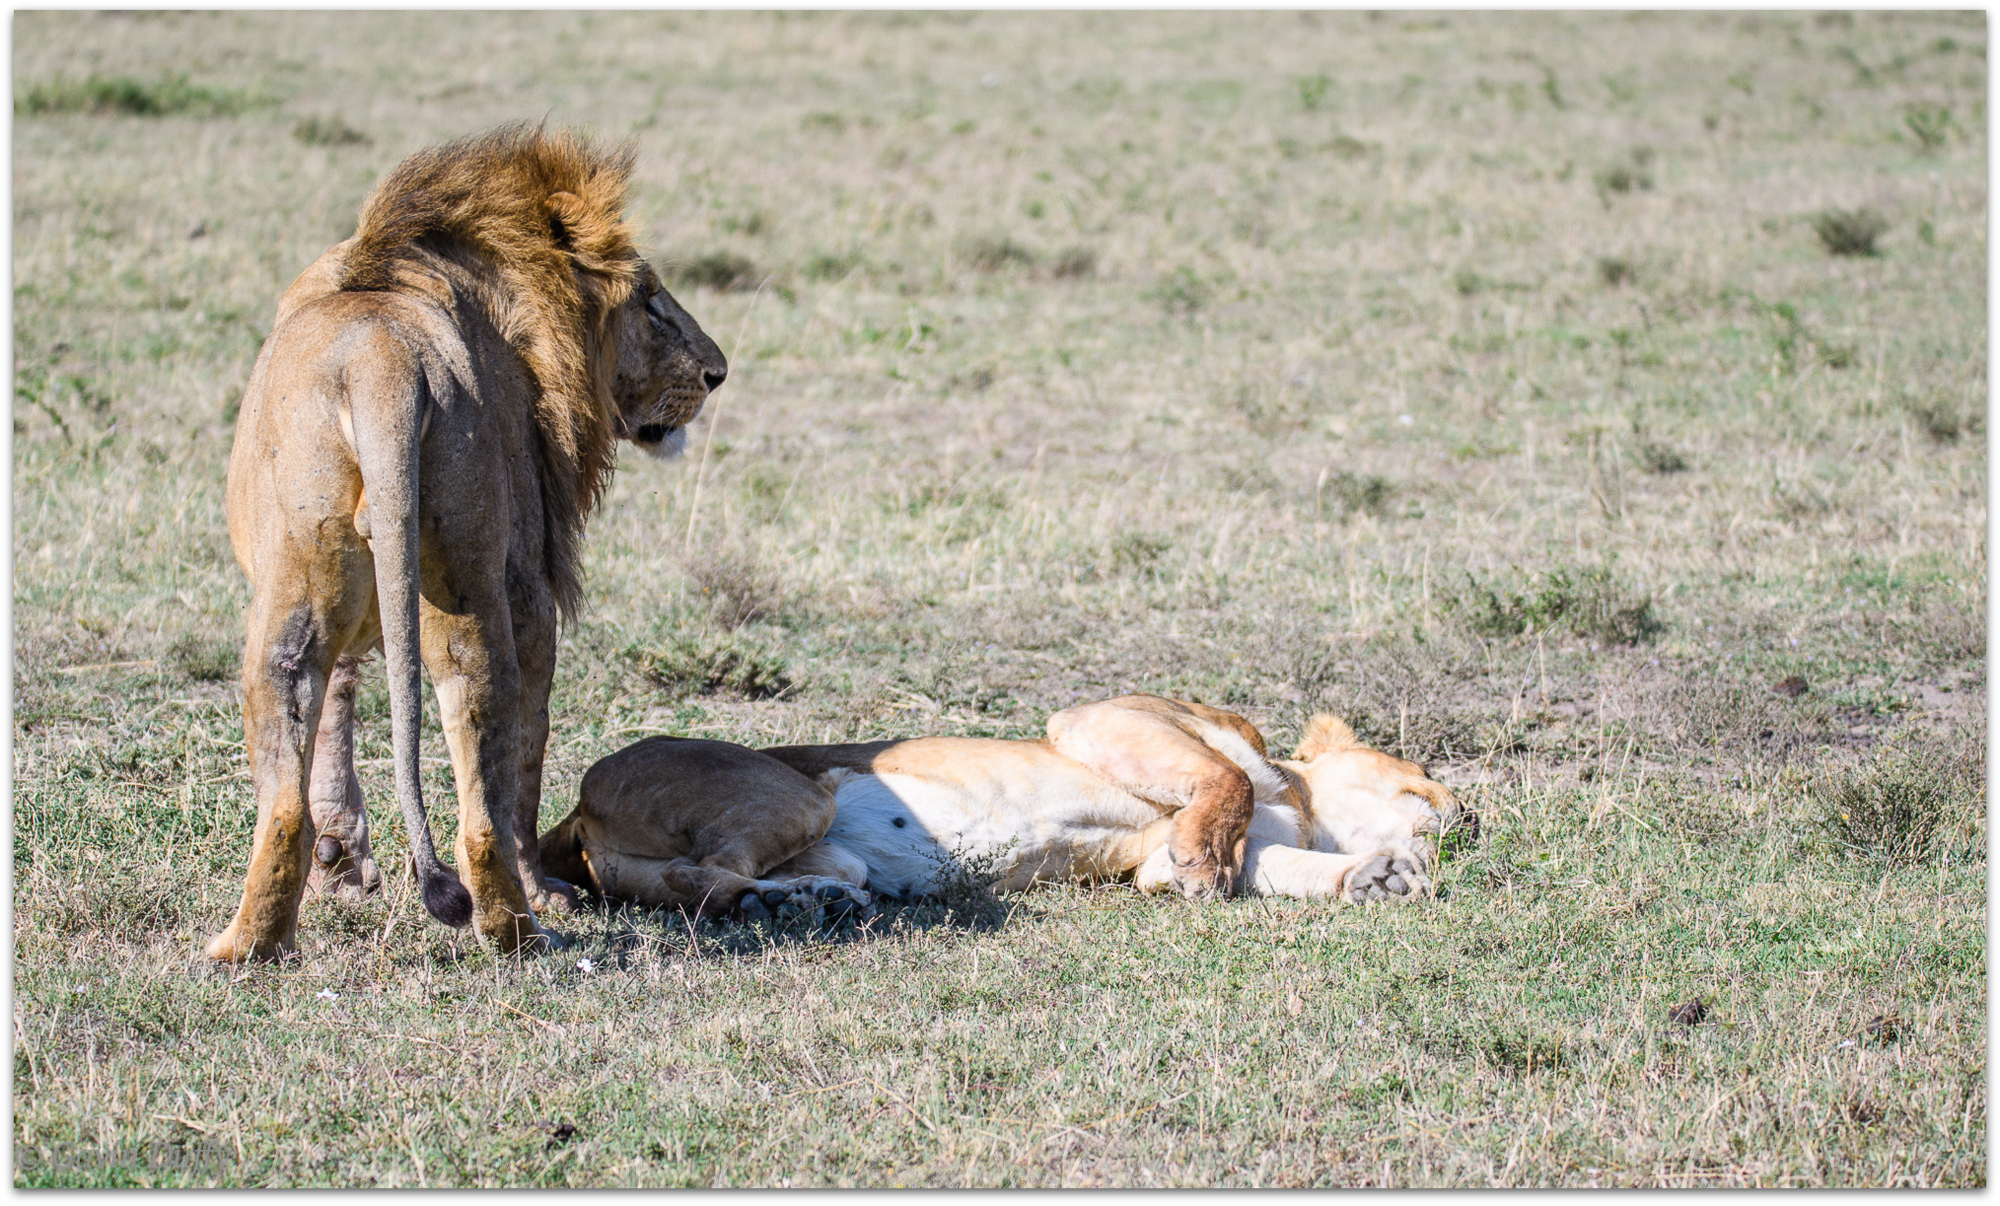 Courting pair of lions © Gavin Duffy